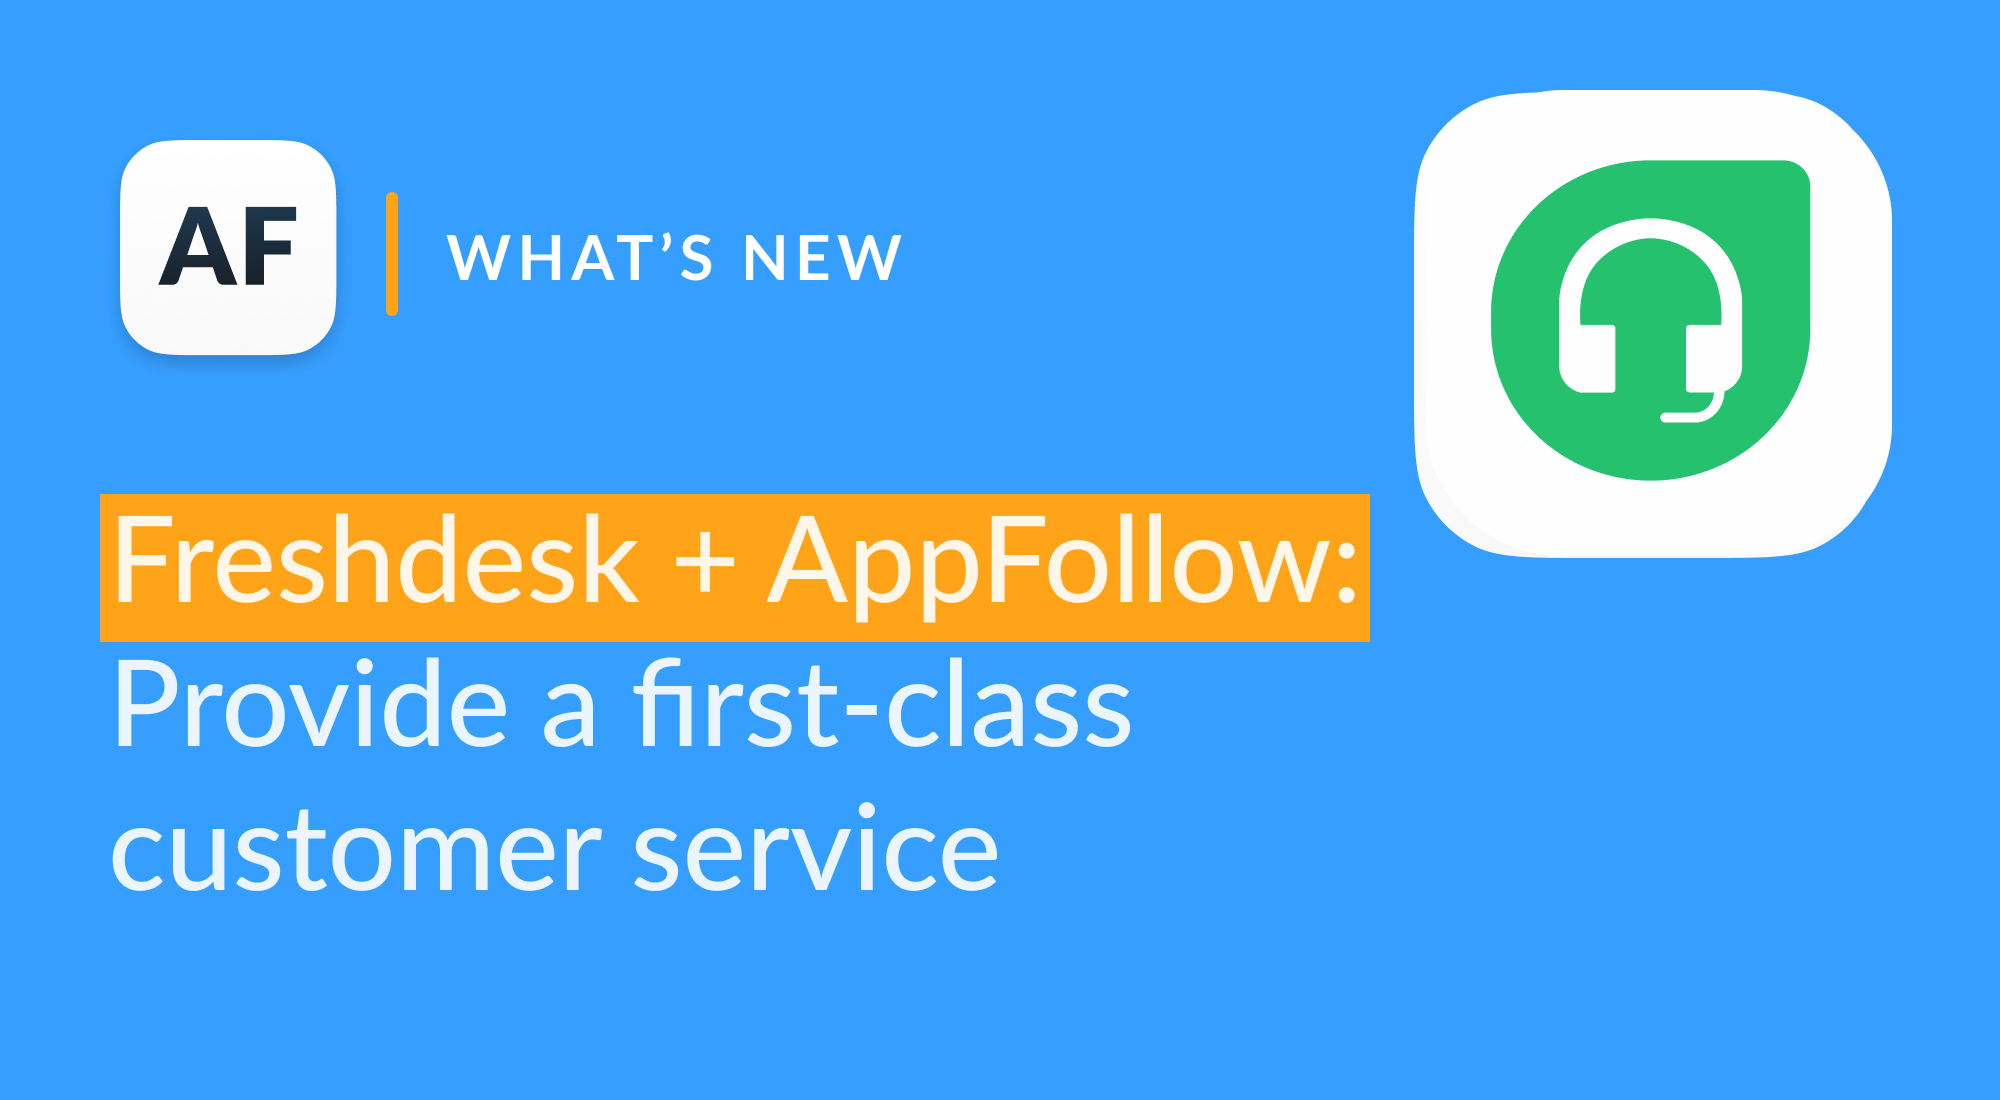 Gear up your Customer Support team with Freshdesk